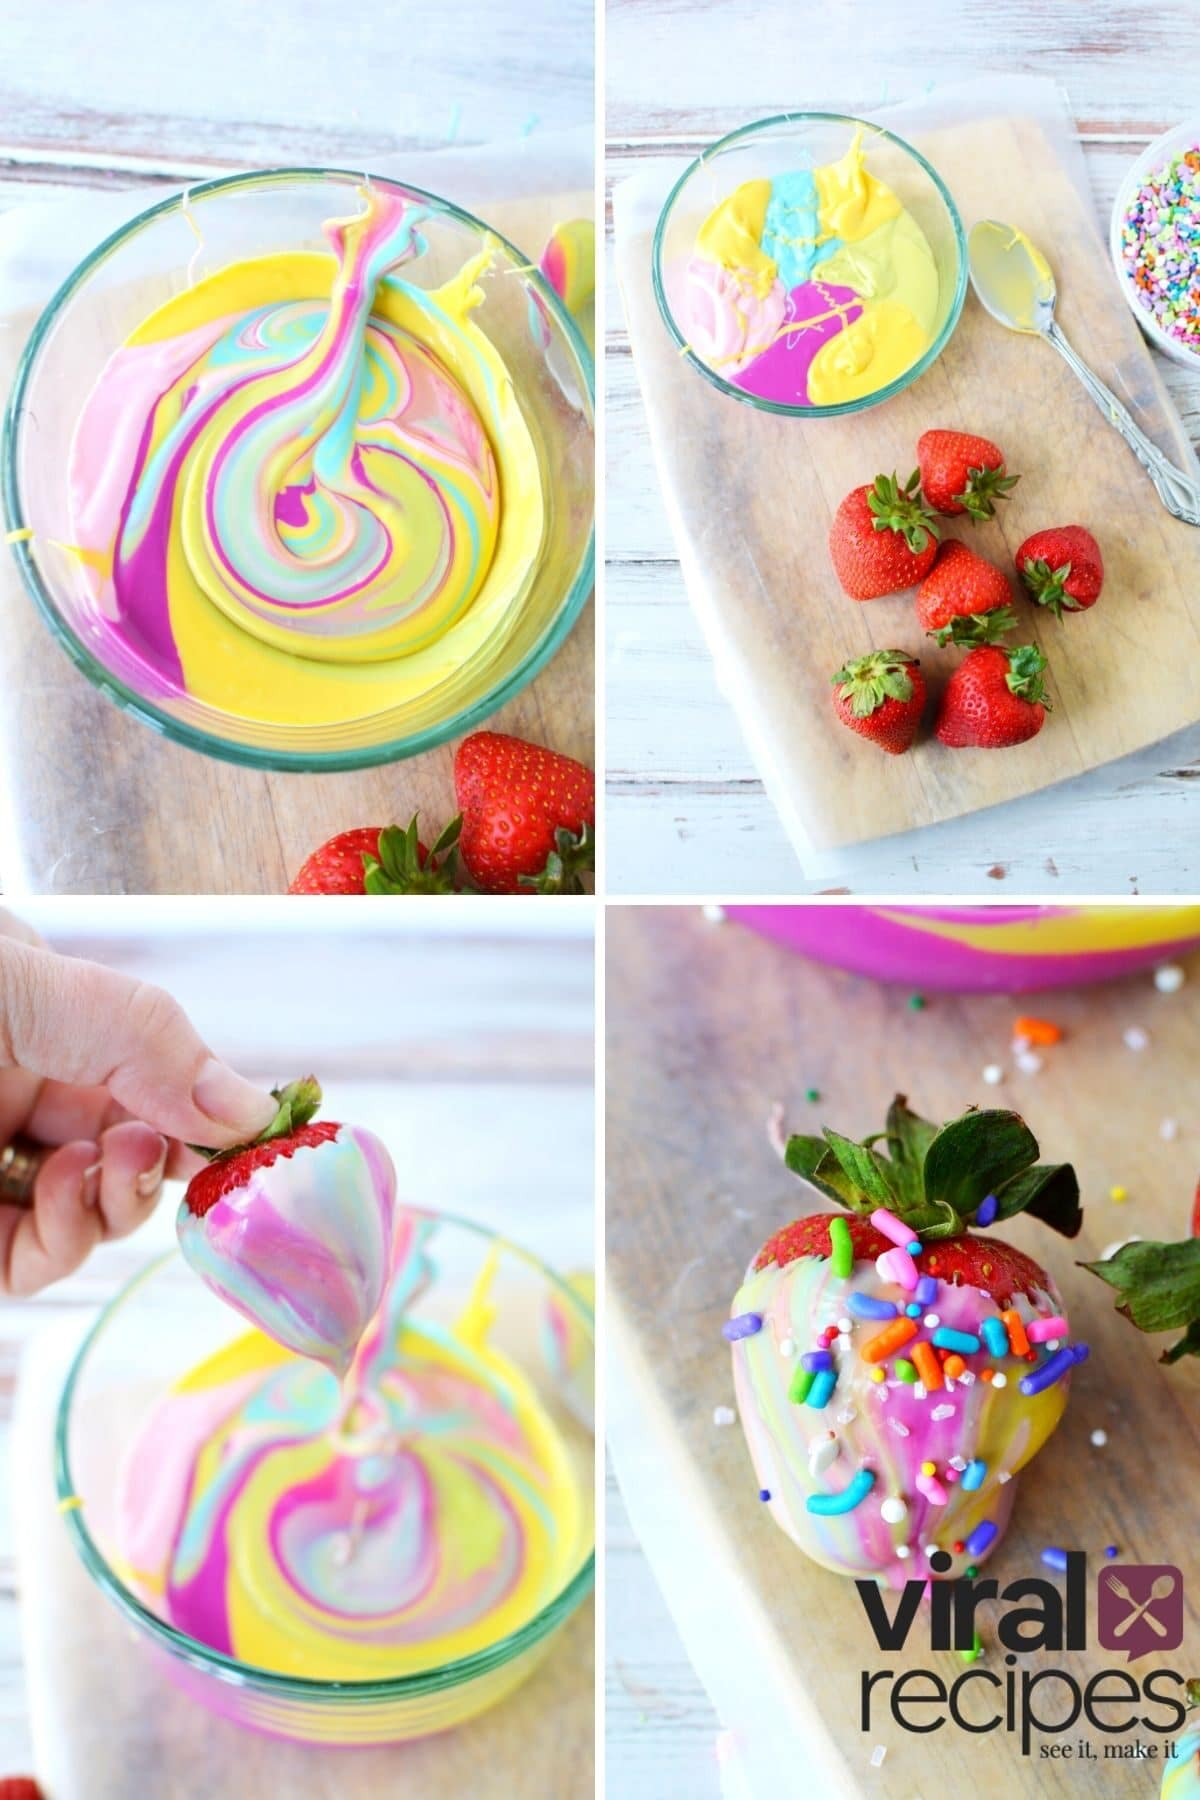 tie dye strawberries with chocolate